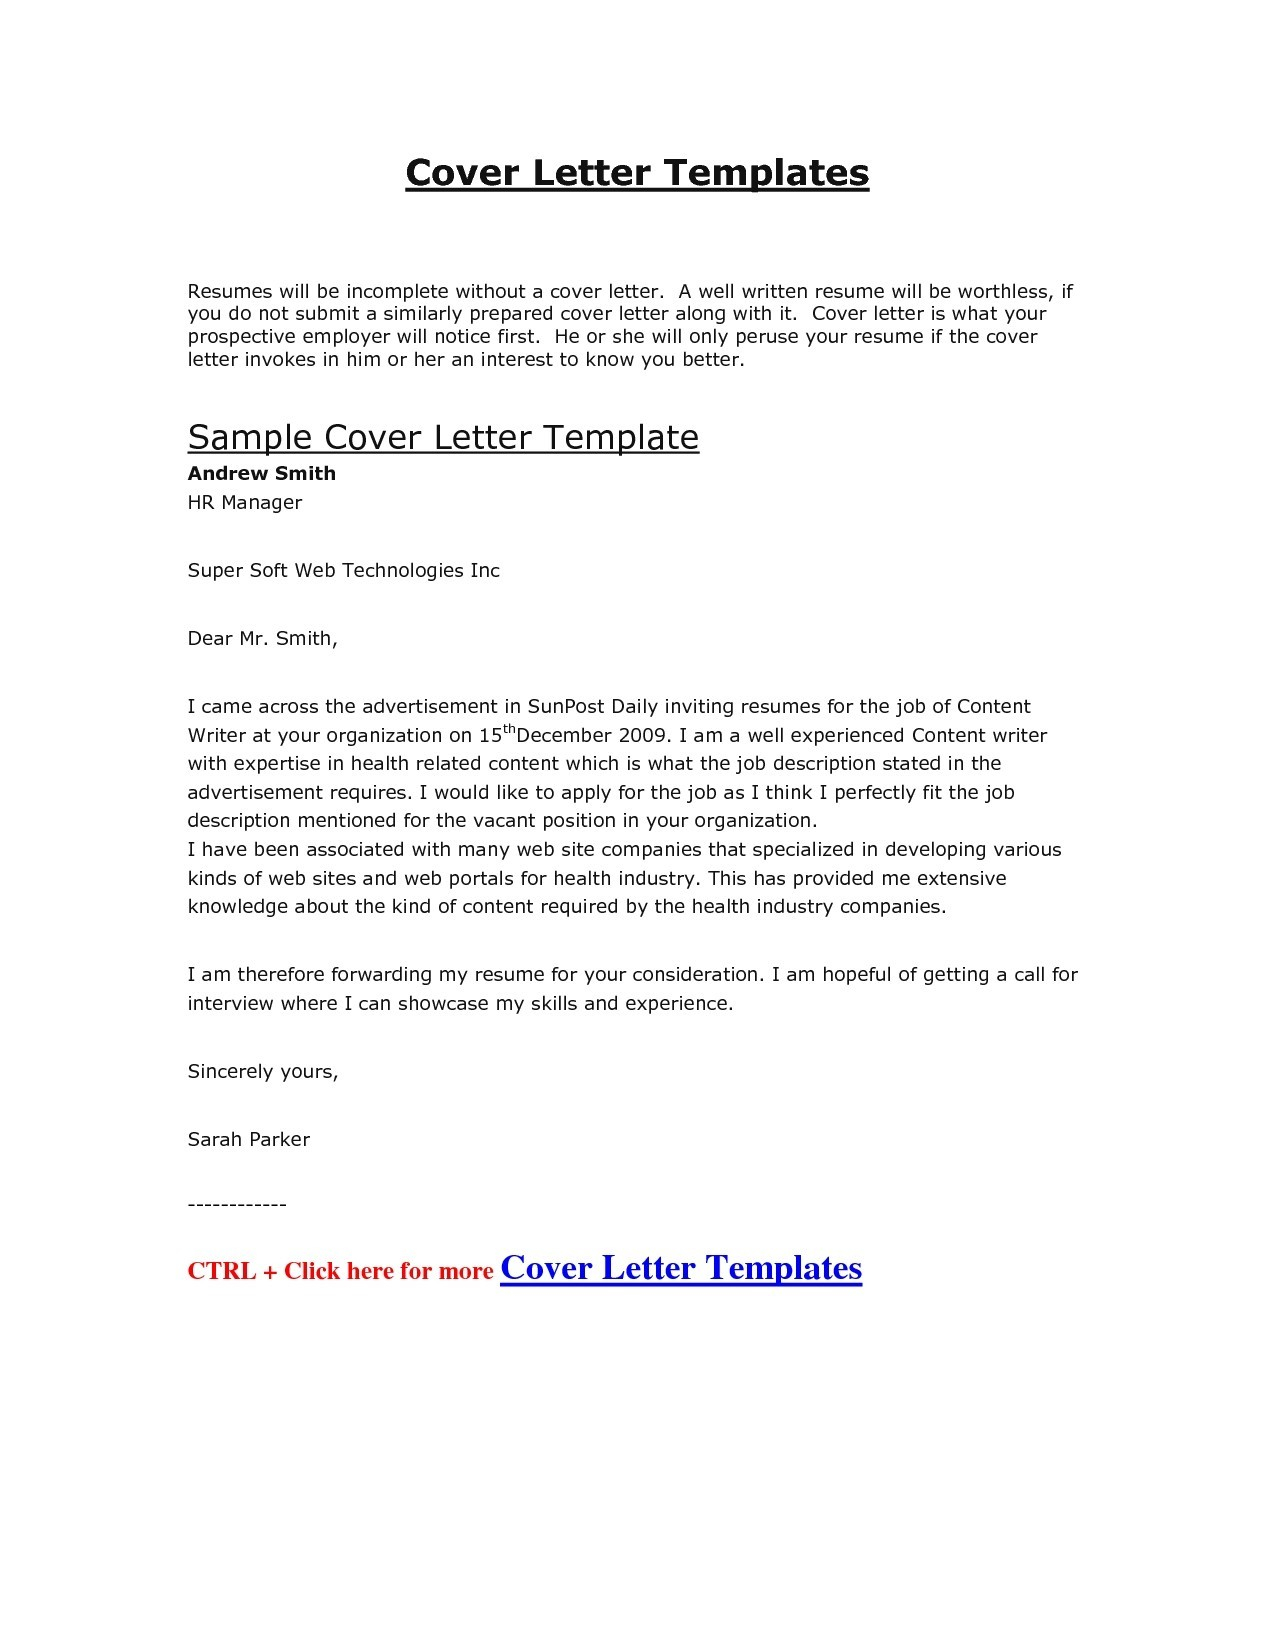 Due Diligence Engagement Letter Template - Job Application Letter format Template Copy Cover Letter Template Hr